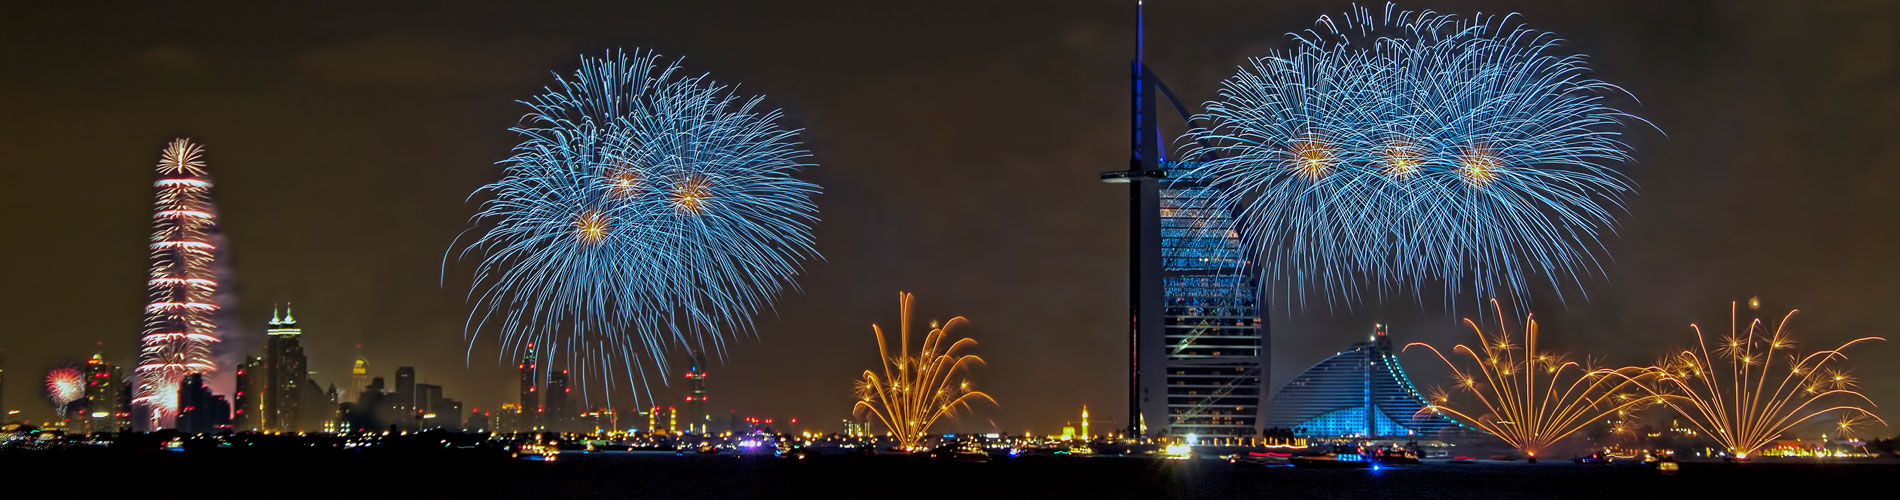 Special Event - New Year's in Dubai